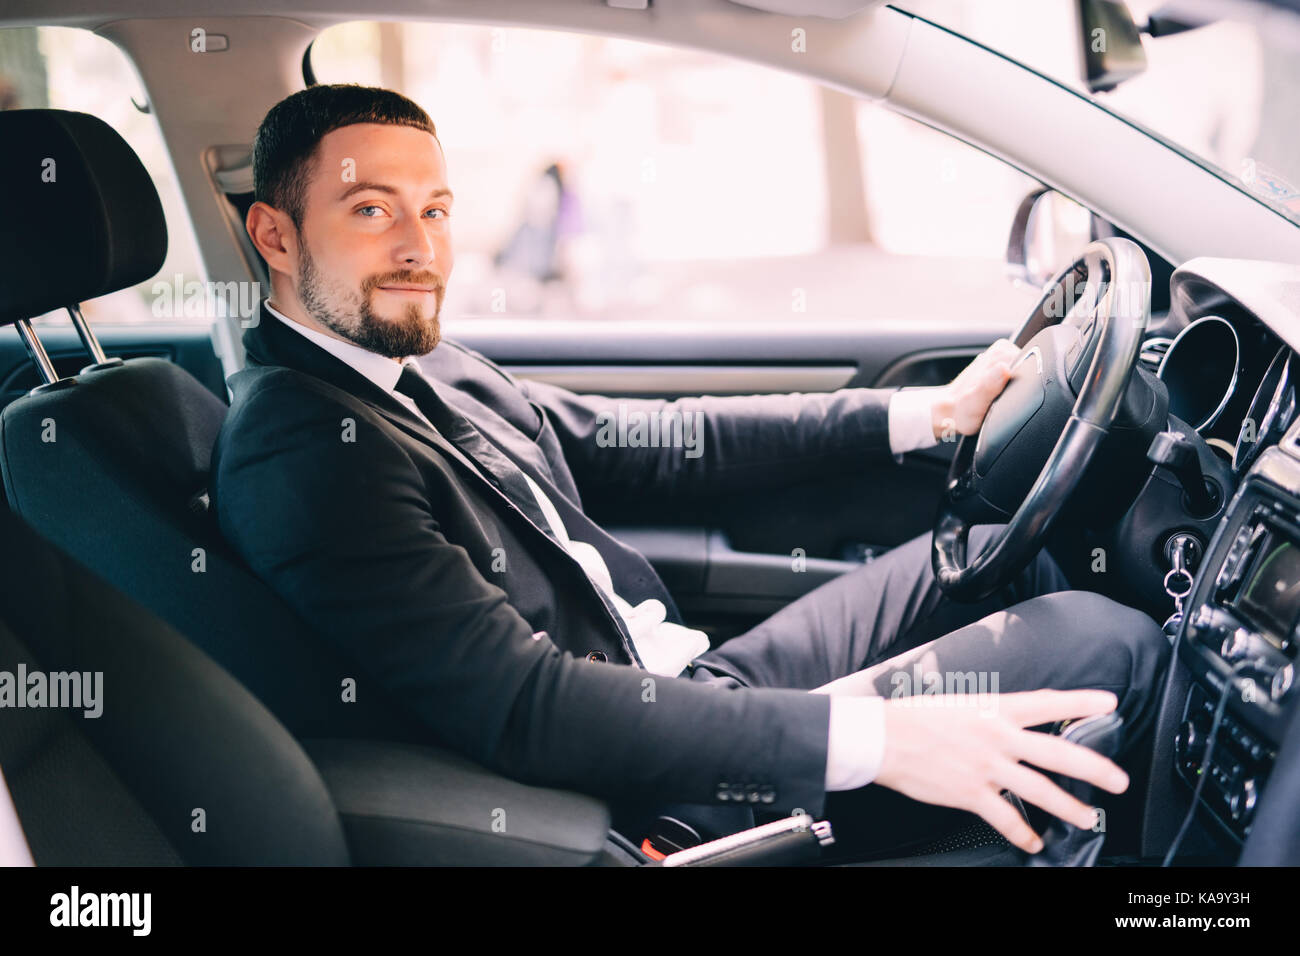 transport, business trip, speed, destination and people concept - close up of young man in suit driving car Stock Photo